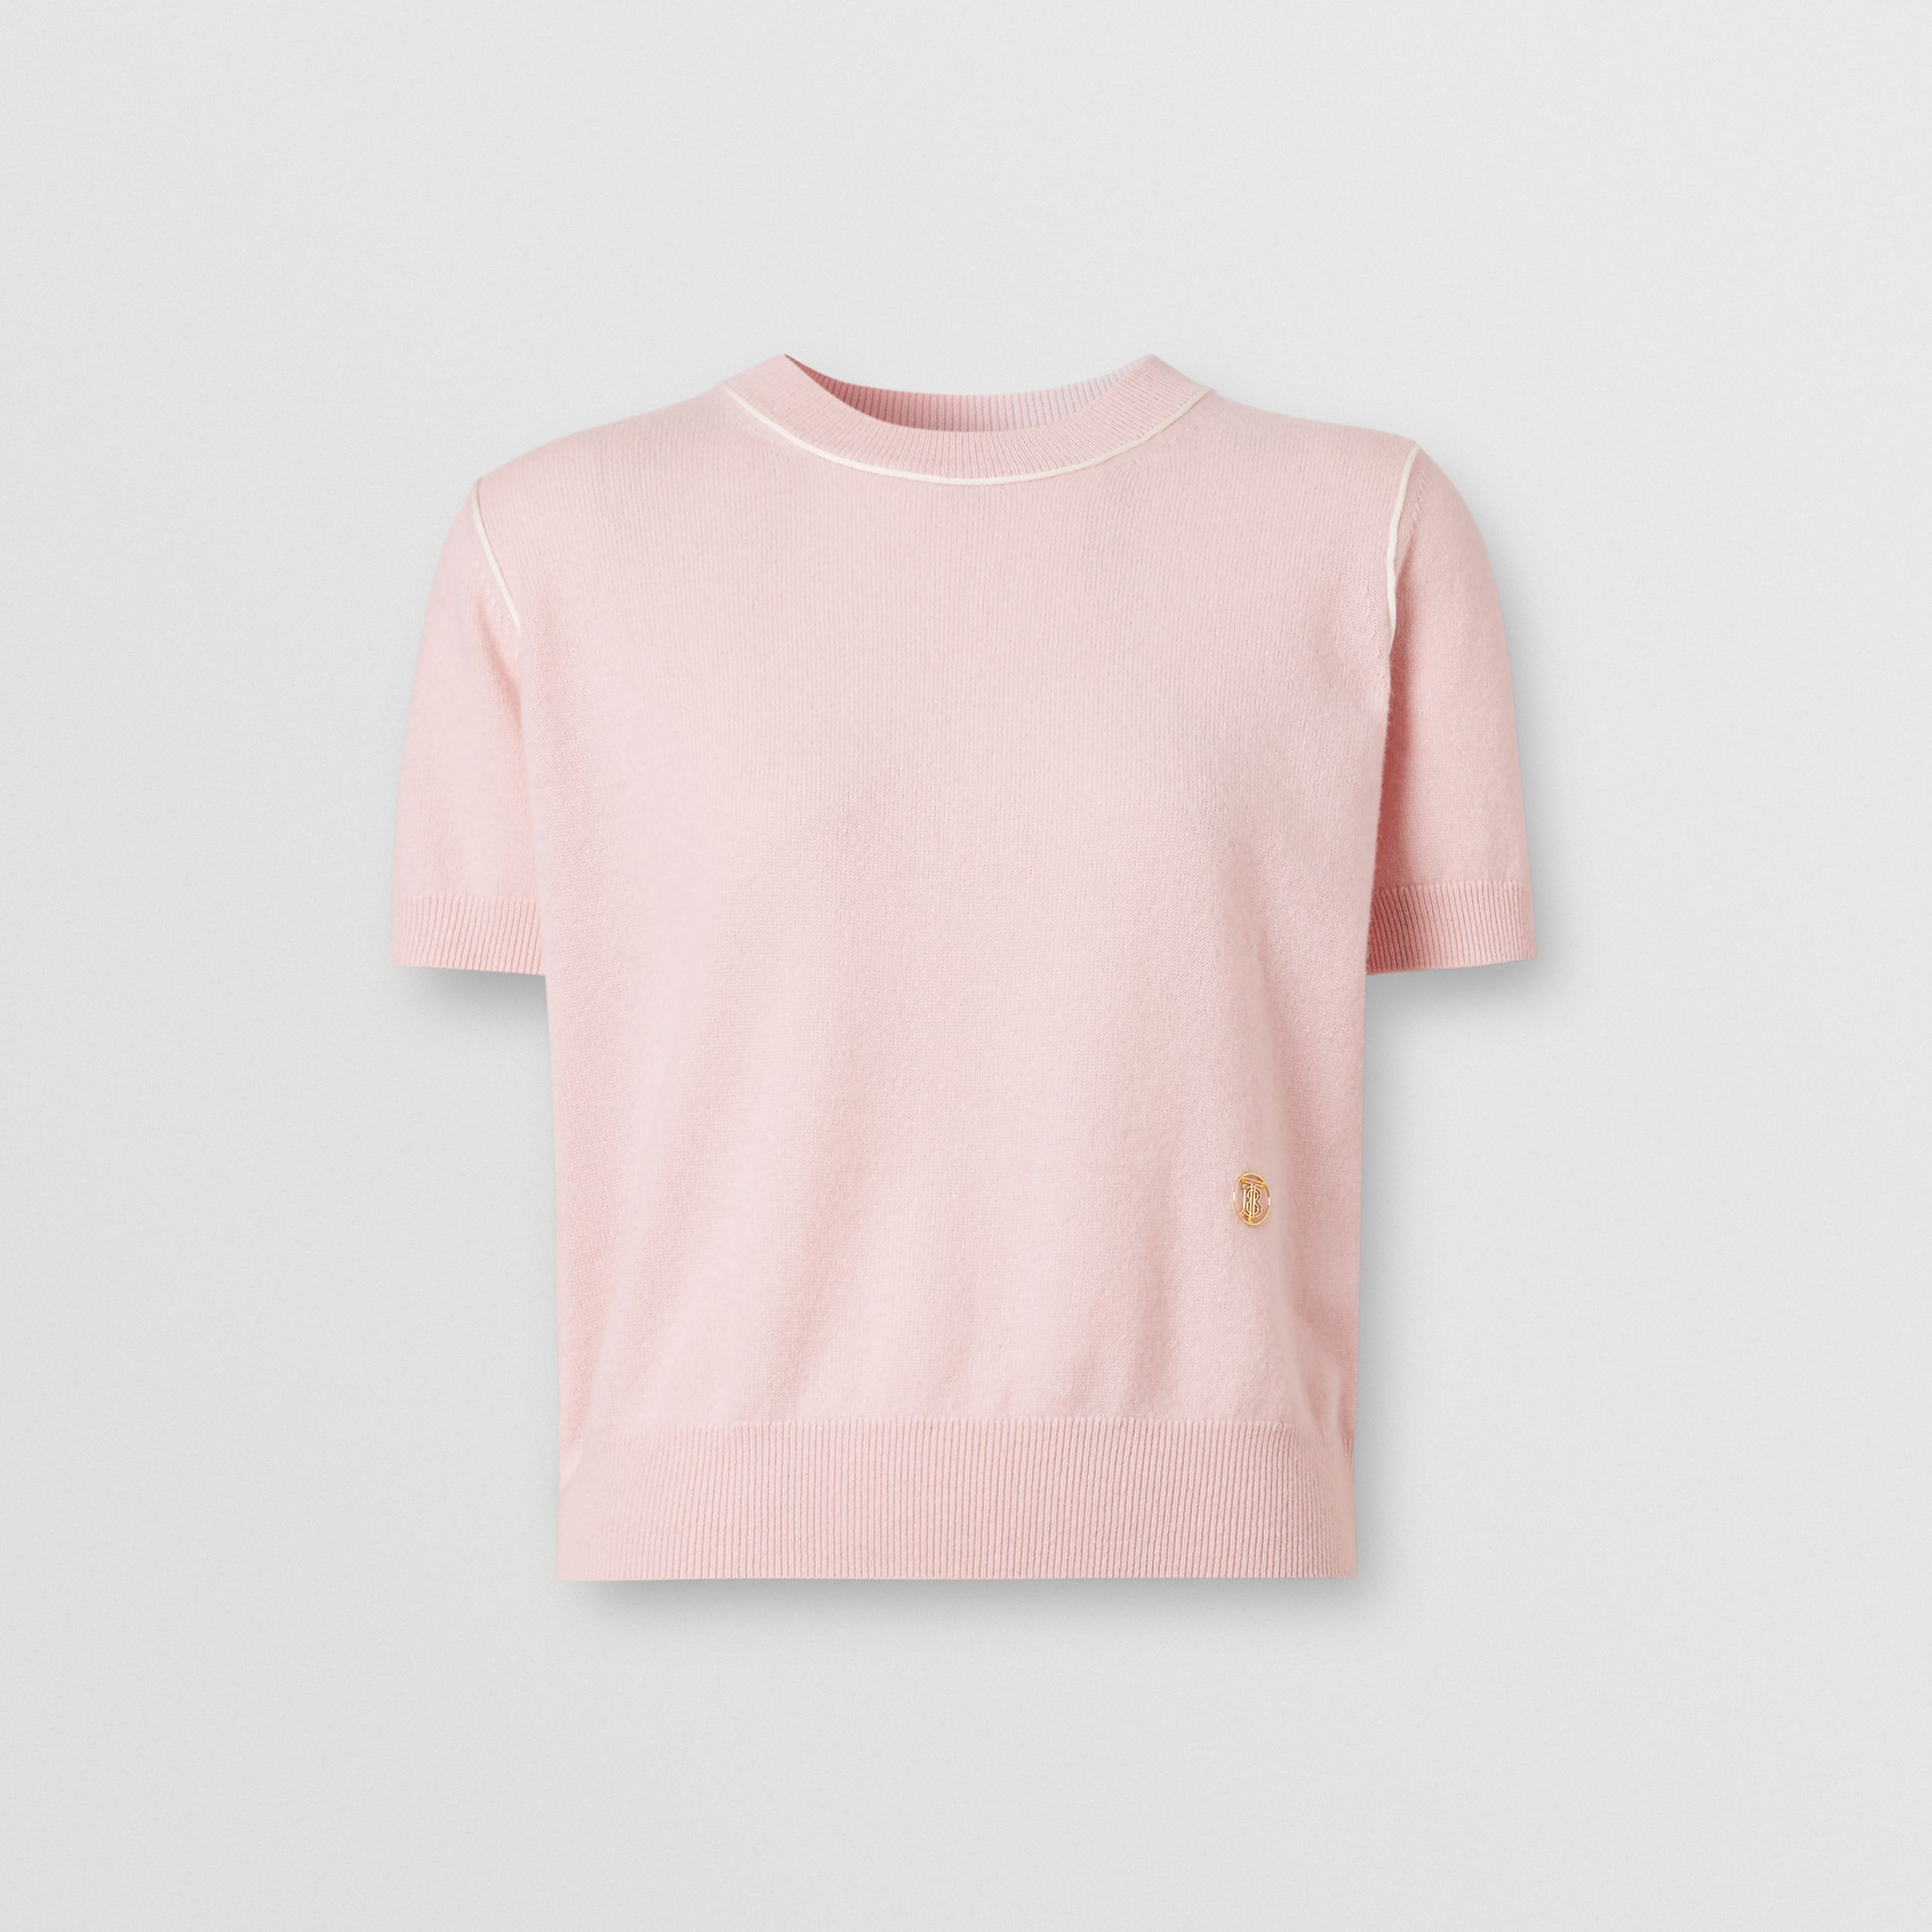 Short-sleeve Monogram Motif Cashmere Top in Copper Pink - Women | Burberry - 4